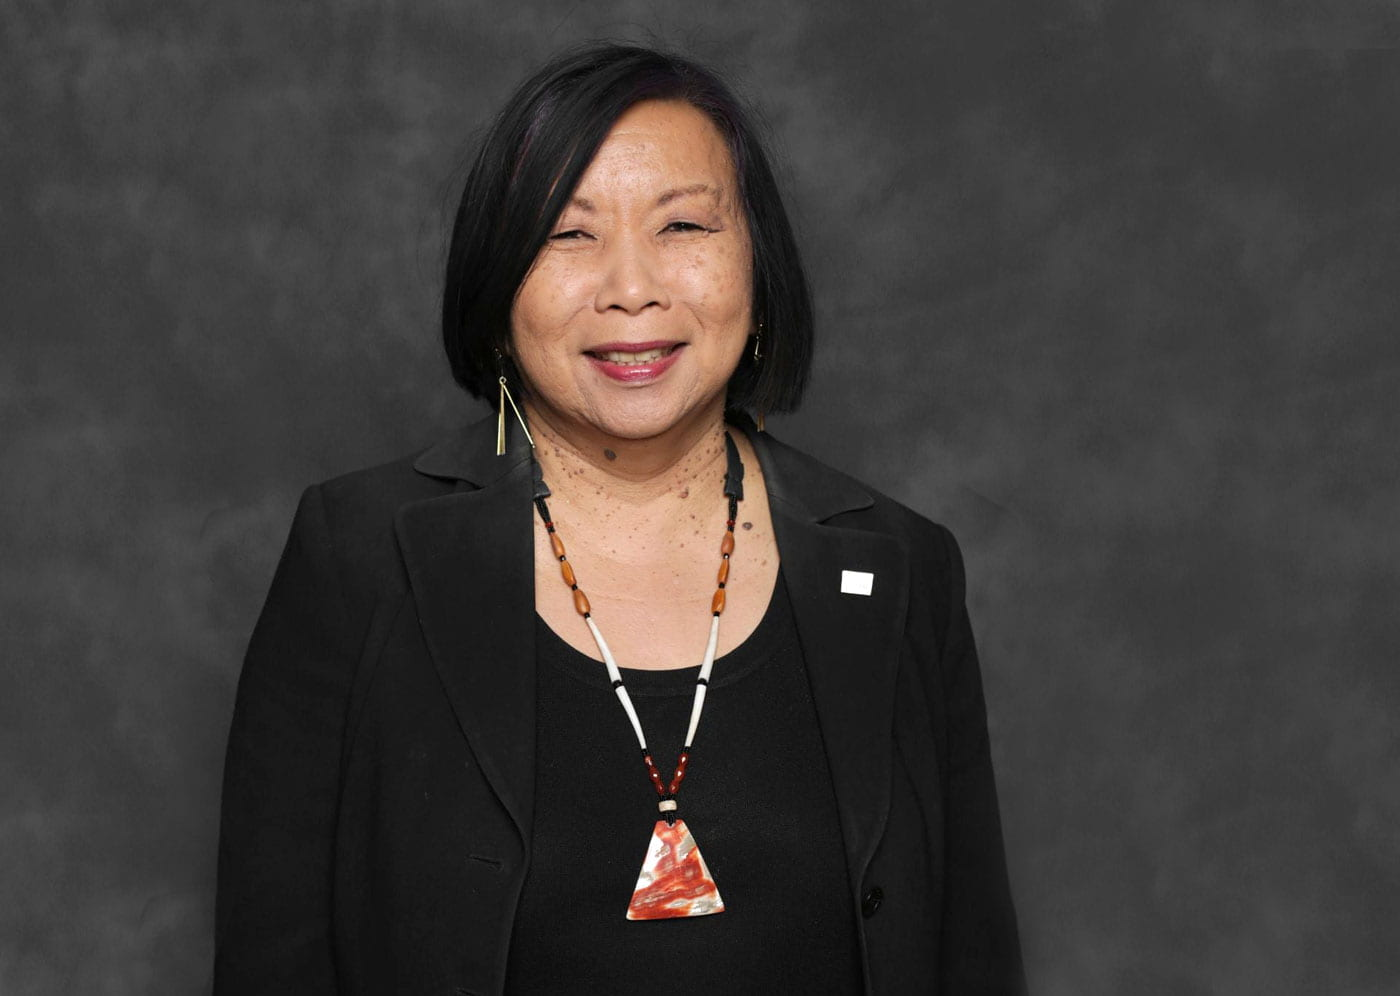 SJSU Chief Diversity Officer Kathleen Wong(Lau).